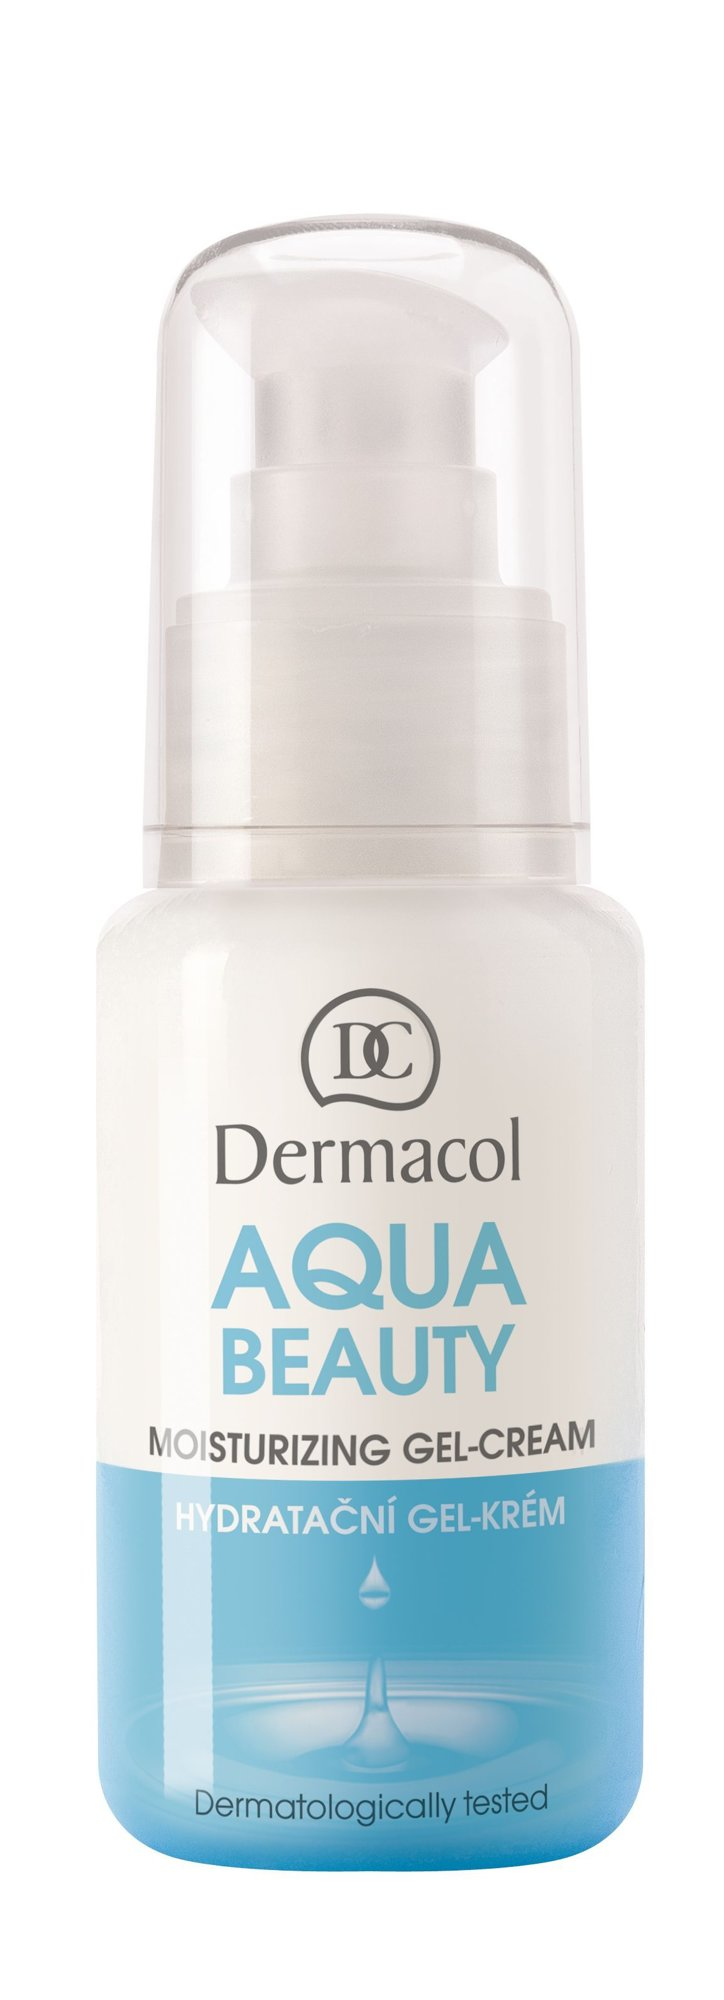 Dermacol Aqua Beauty Cosmetic 50ml